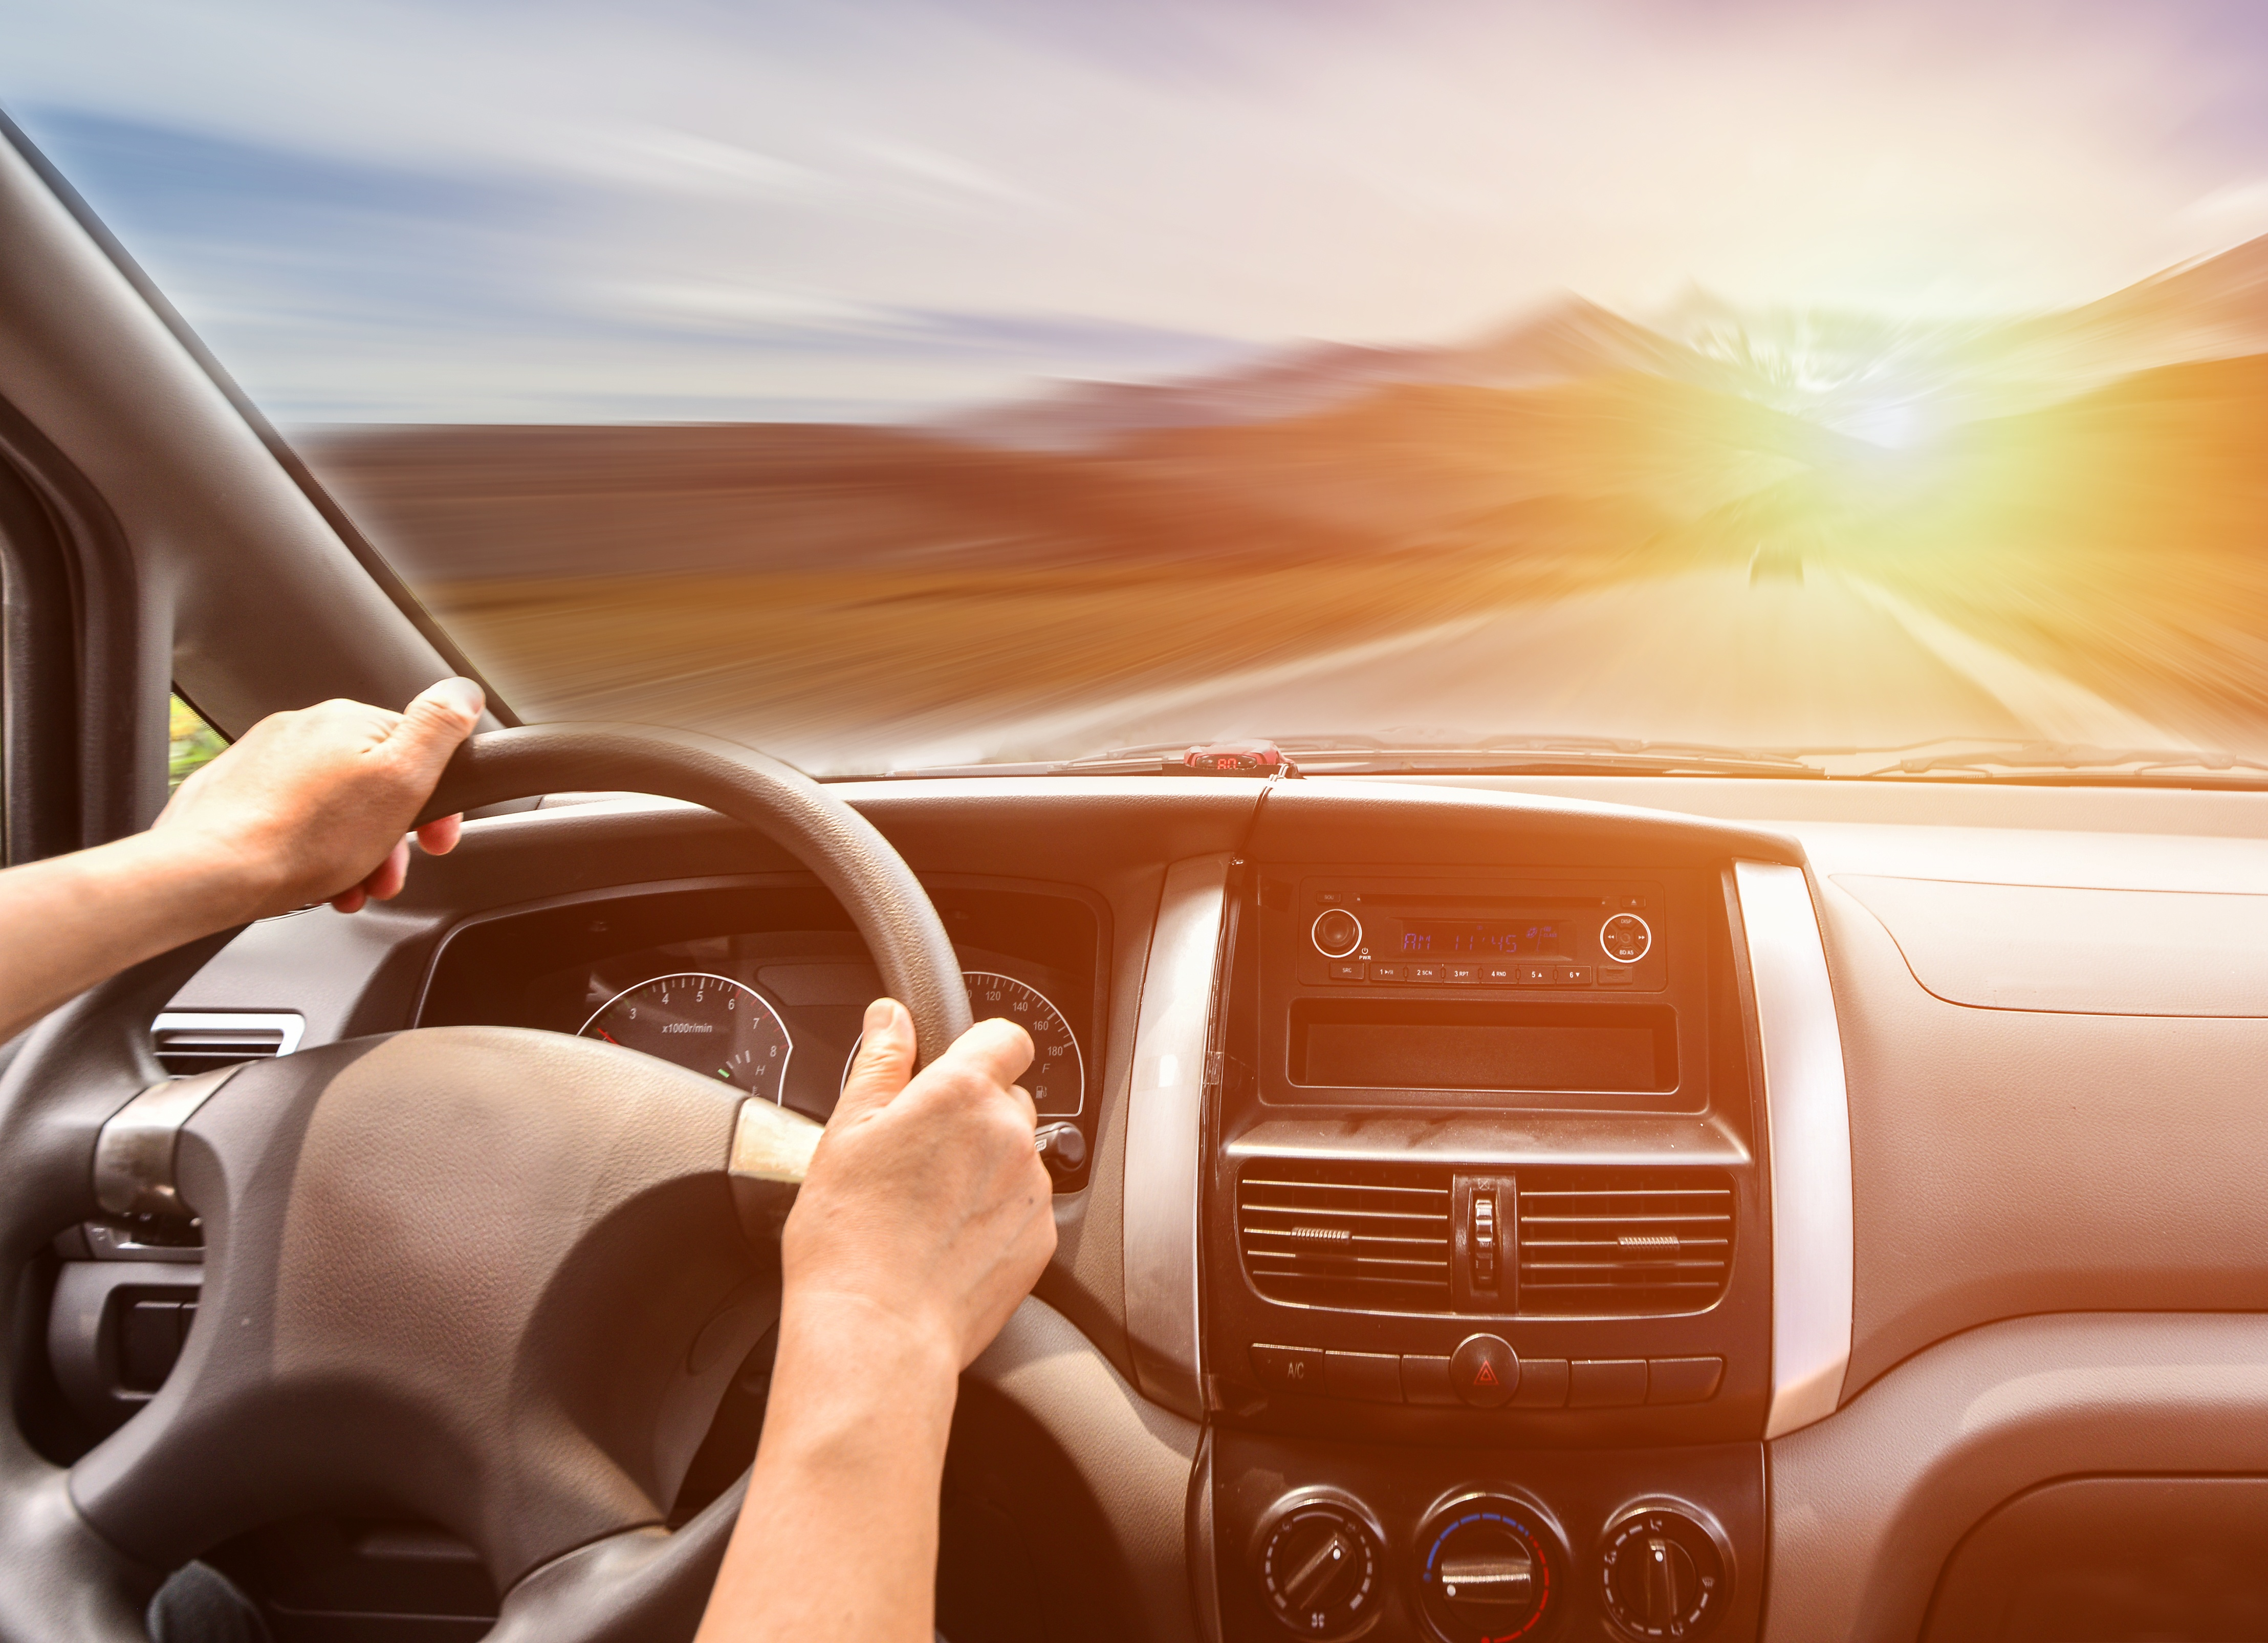 Basic rules for the driver of a vehicle